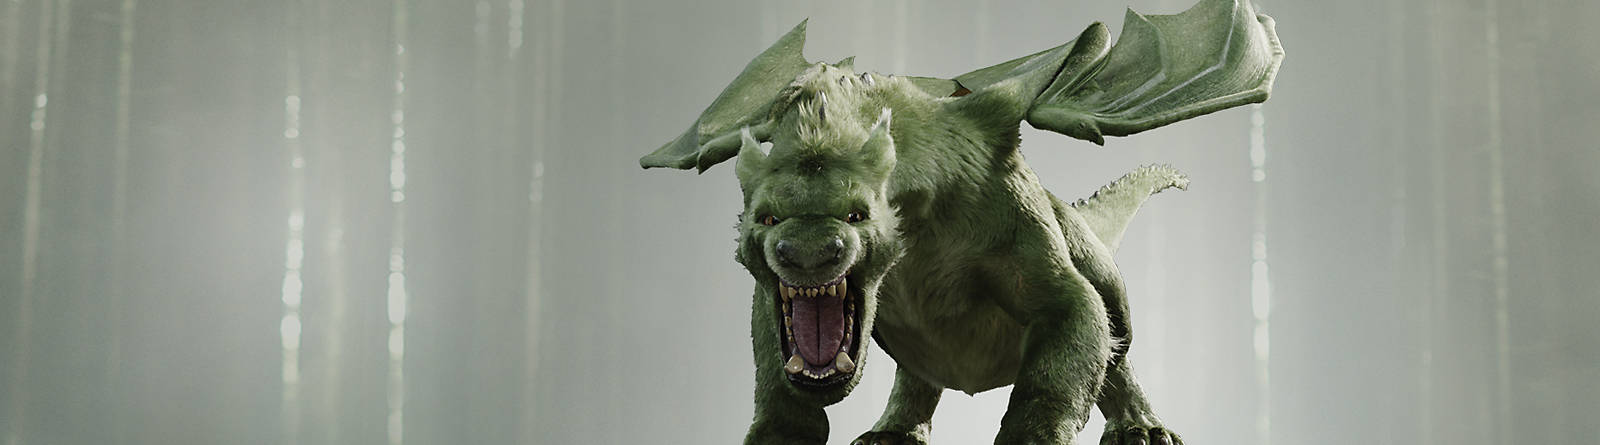 Pete's Dragon Explore our Pete's Dragon range featuring toys, collectibles, figurines and more